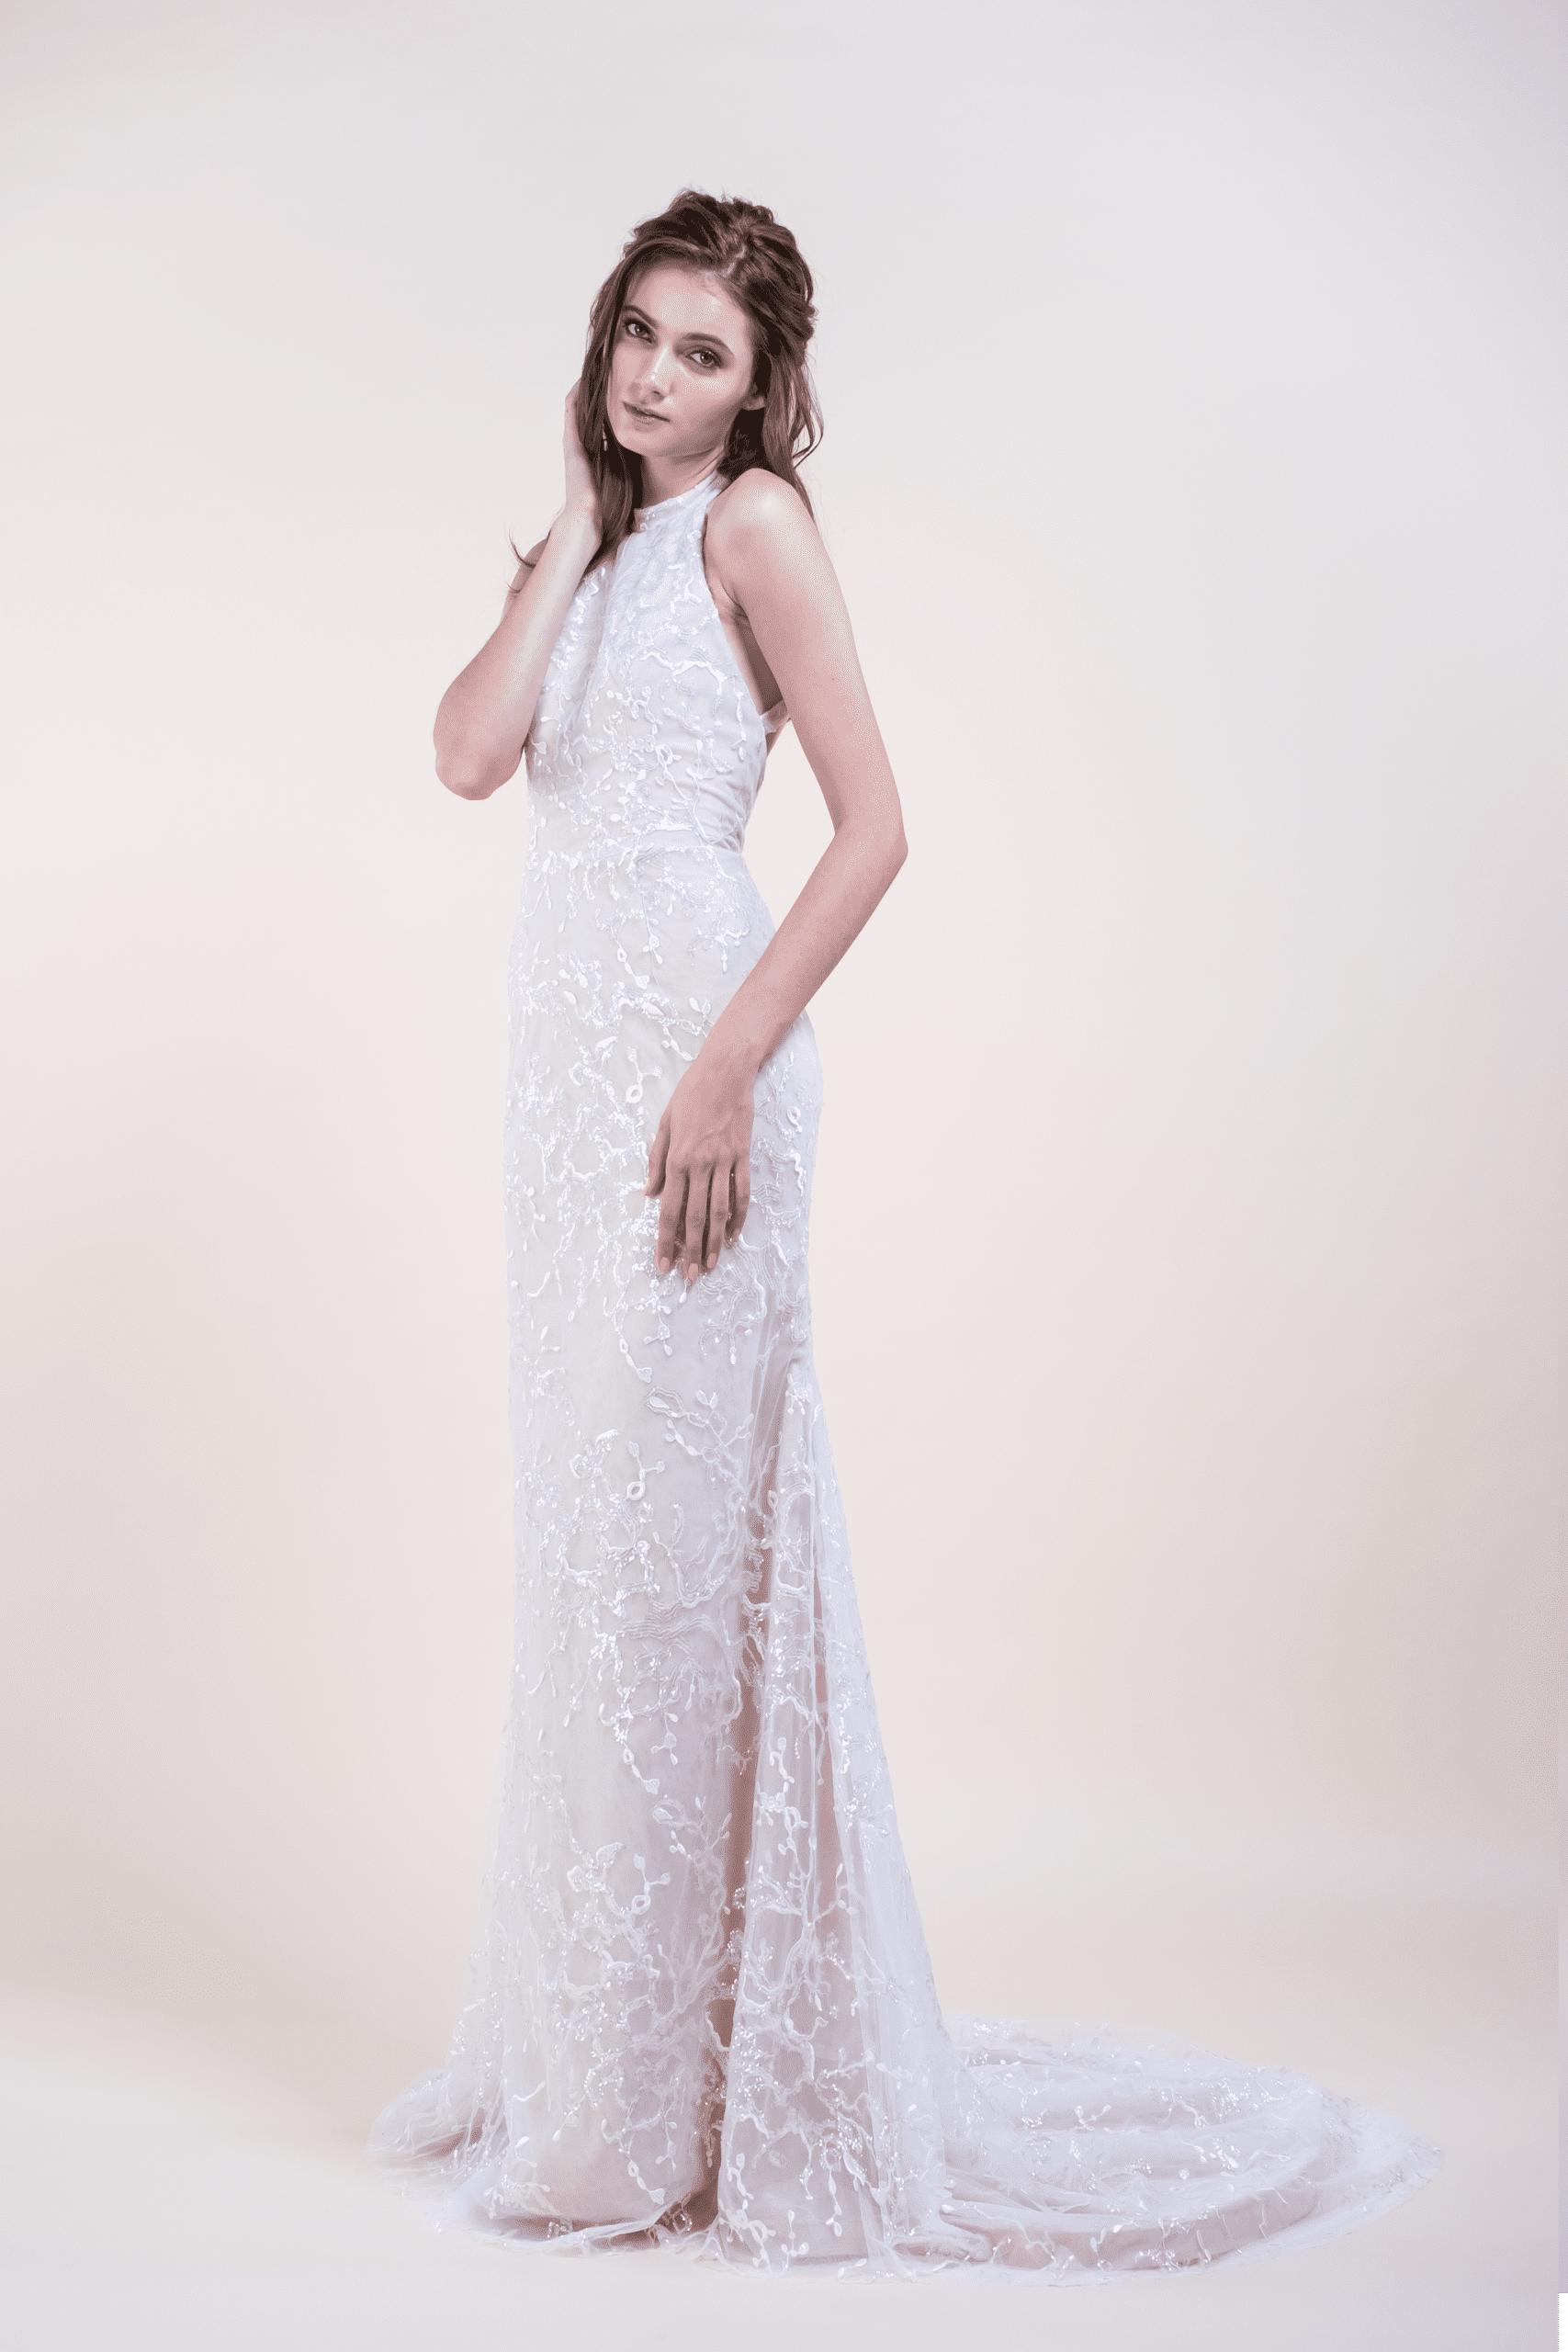 Lara-affordable-Bridal-Gown-for-rent-in-Singapore